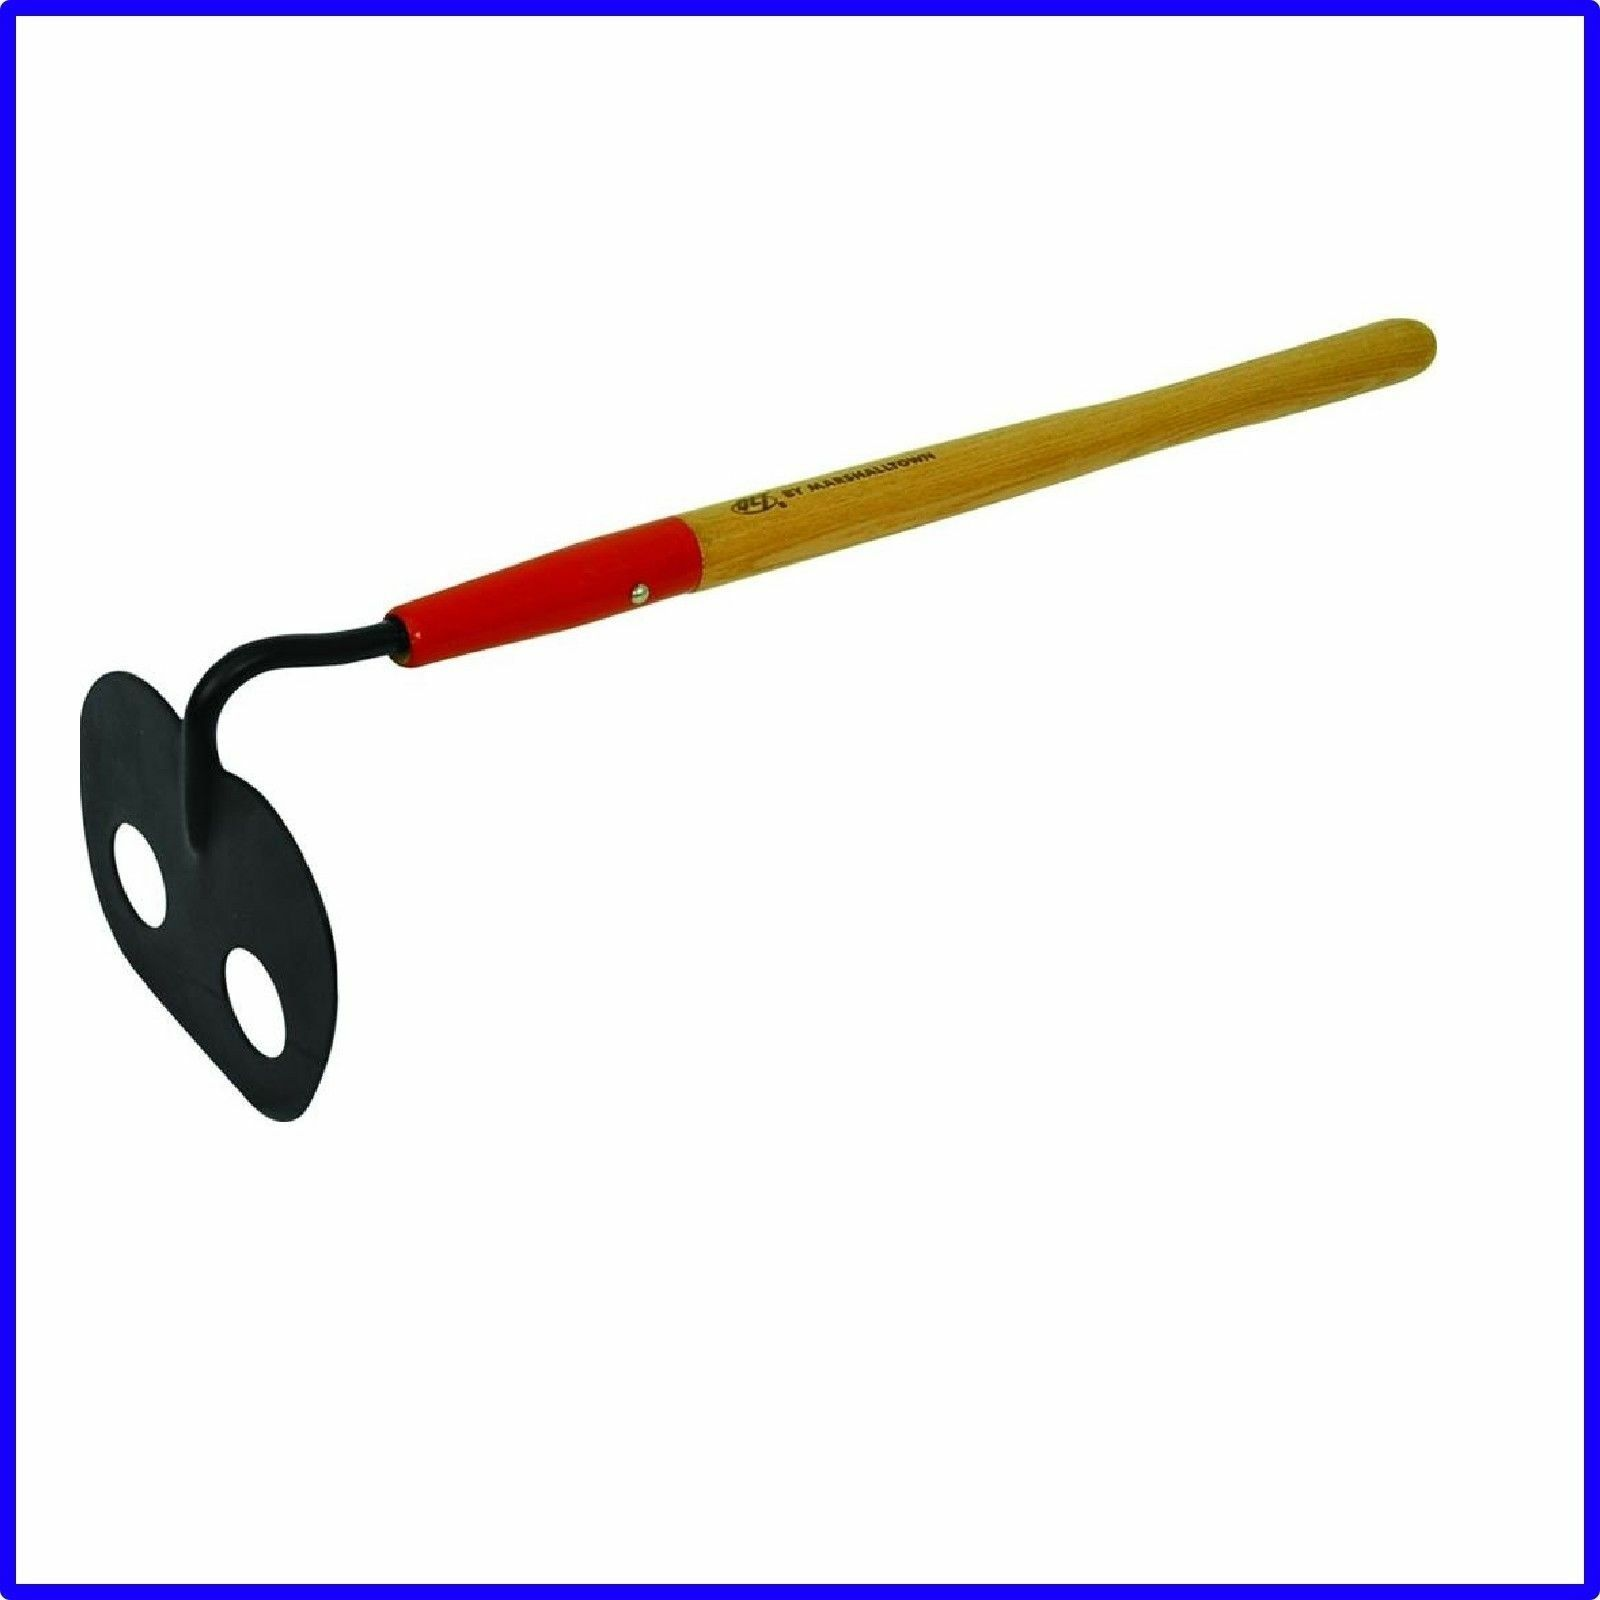 Kraft Tool BC229 6-1//2-Inch by 4-3//4-Inch Short Mortar Hoe with 21-Inch Wood Handle